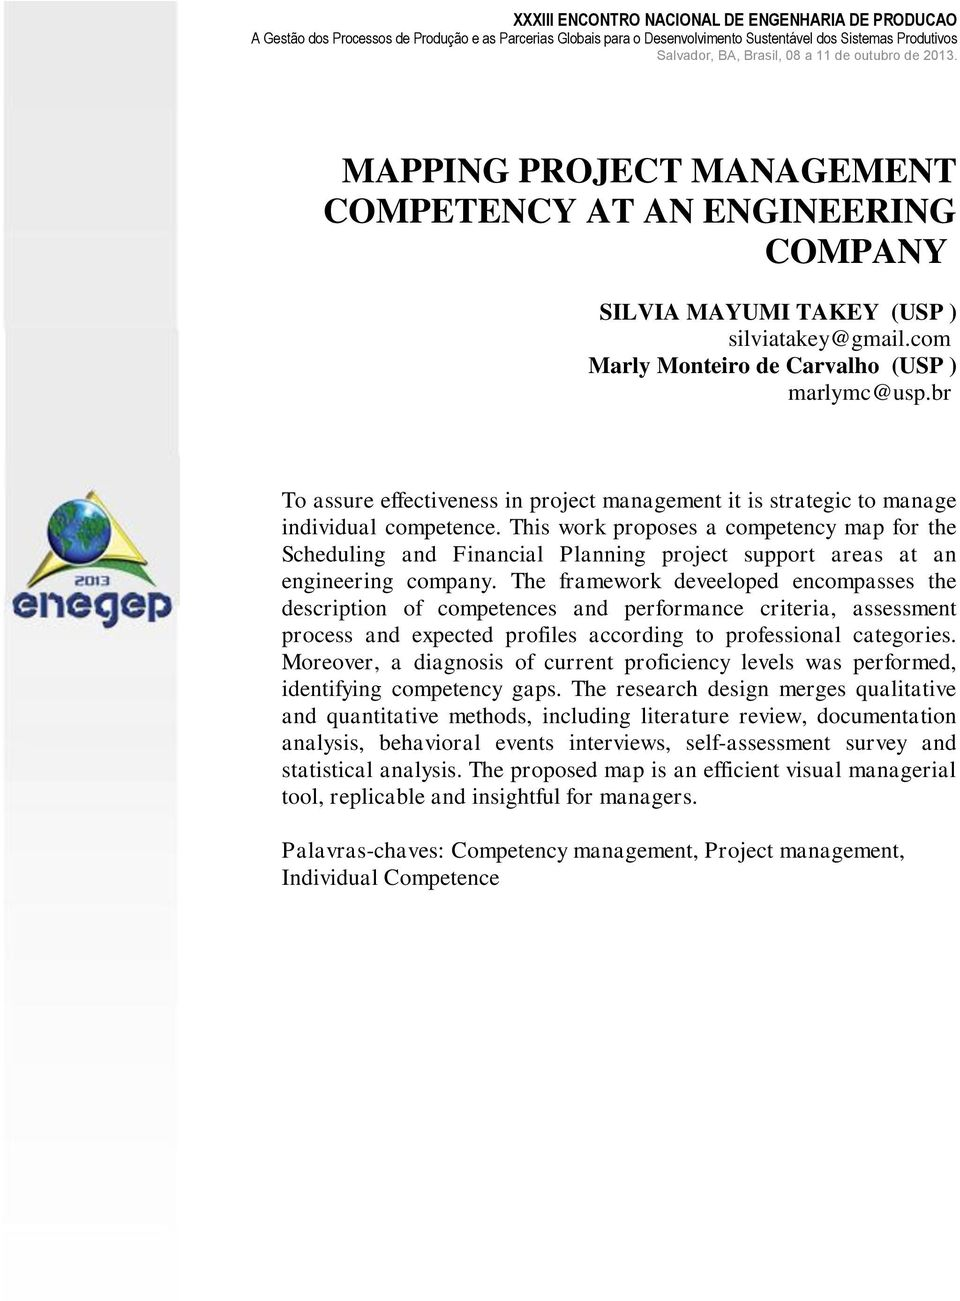 This work proposes a competency map for the Scheduling and Financial Planning project support areas at an engineering company.